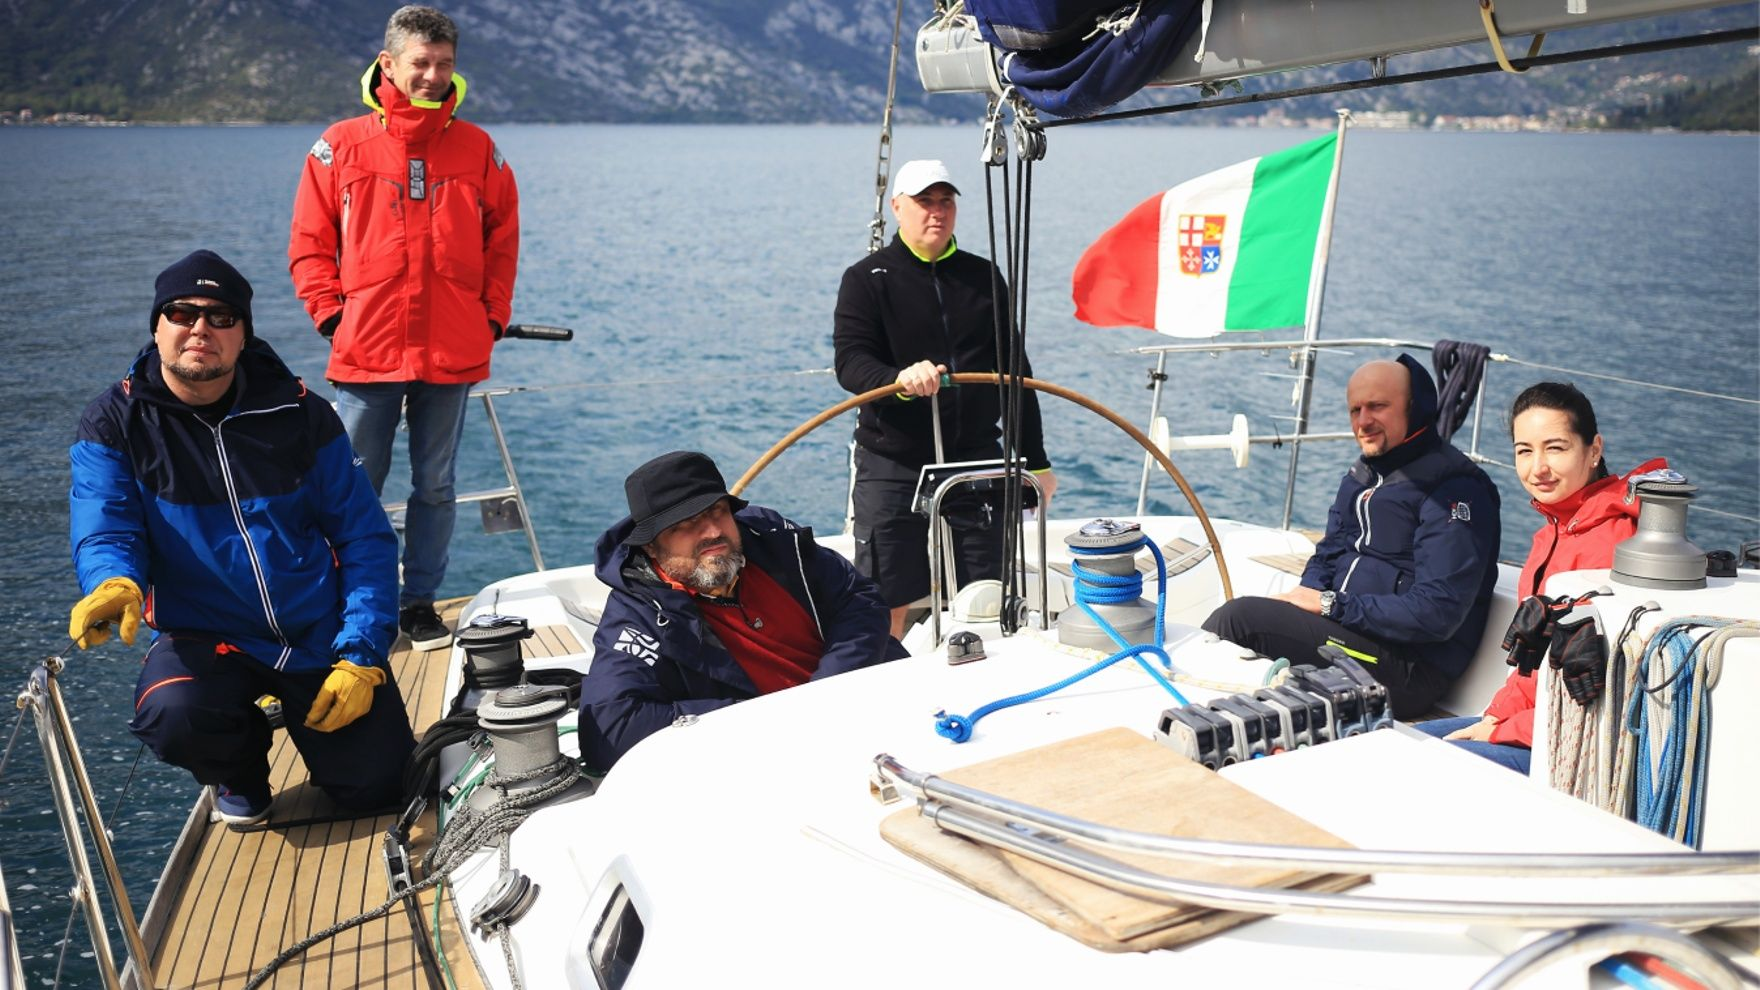 Bareboat Skipper Sail IYT practice in Turkey